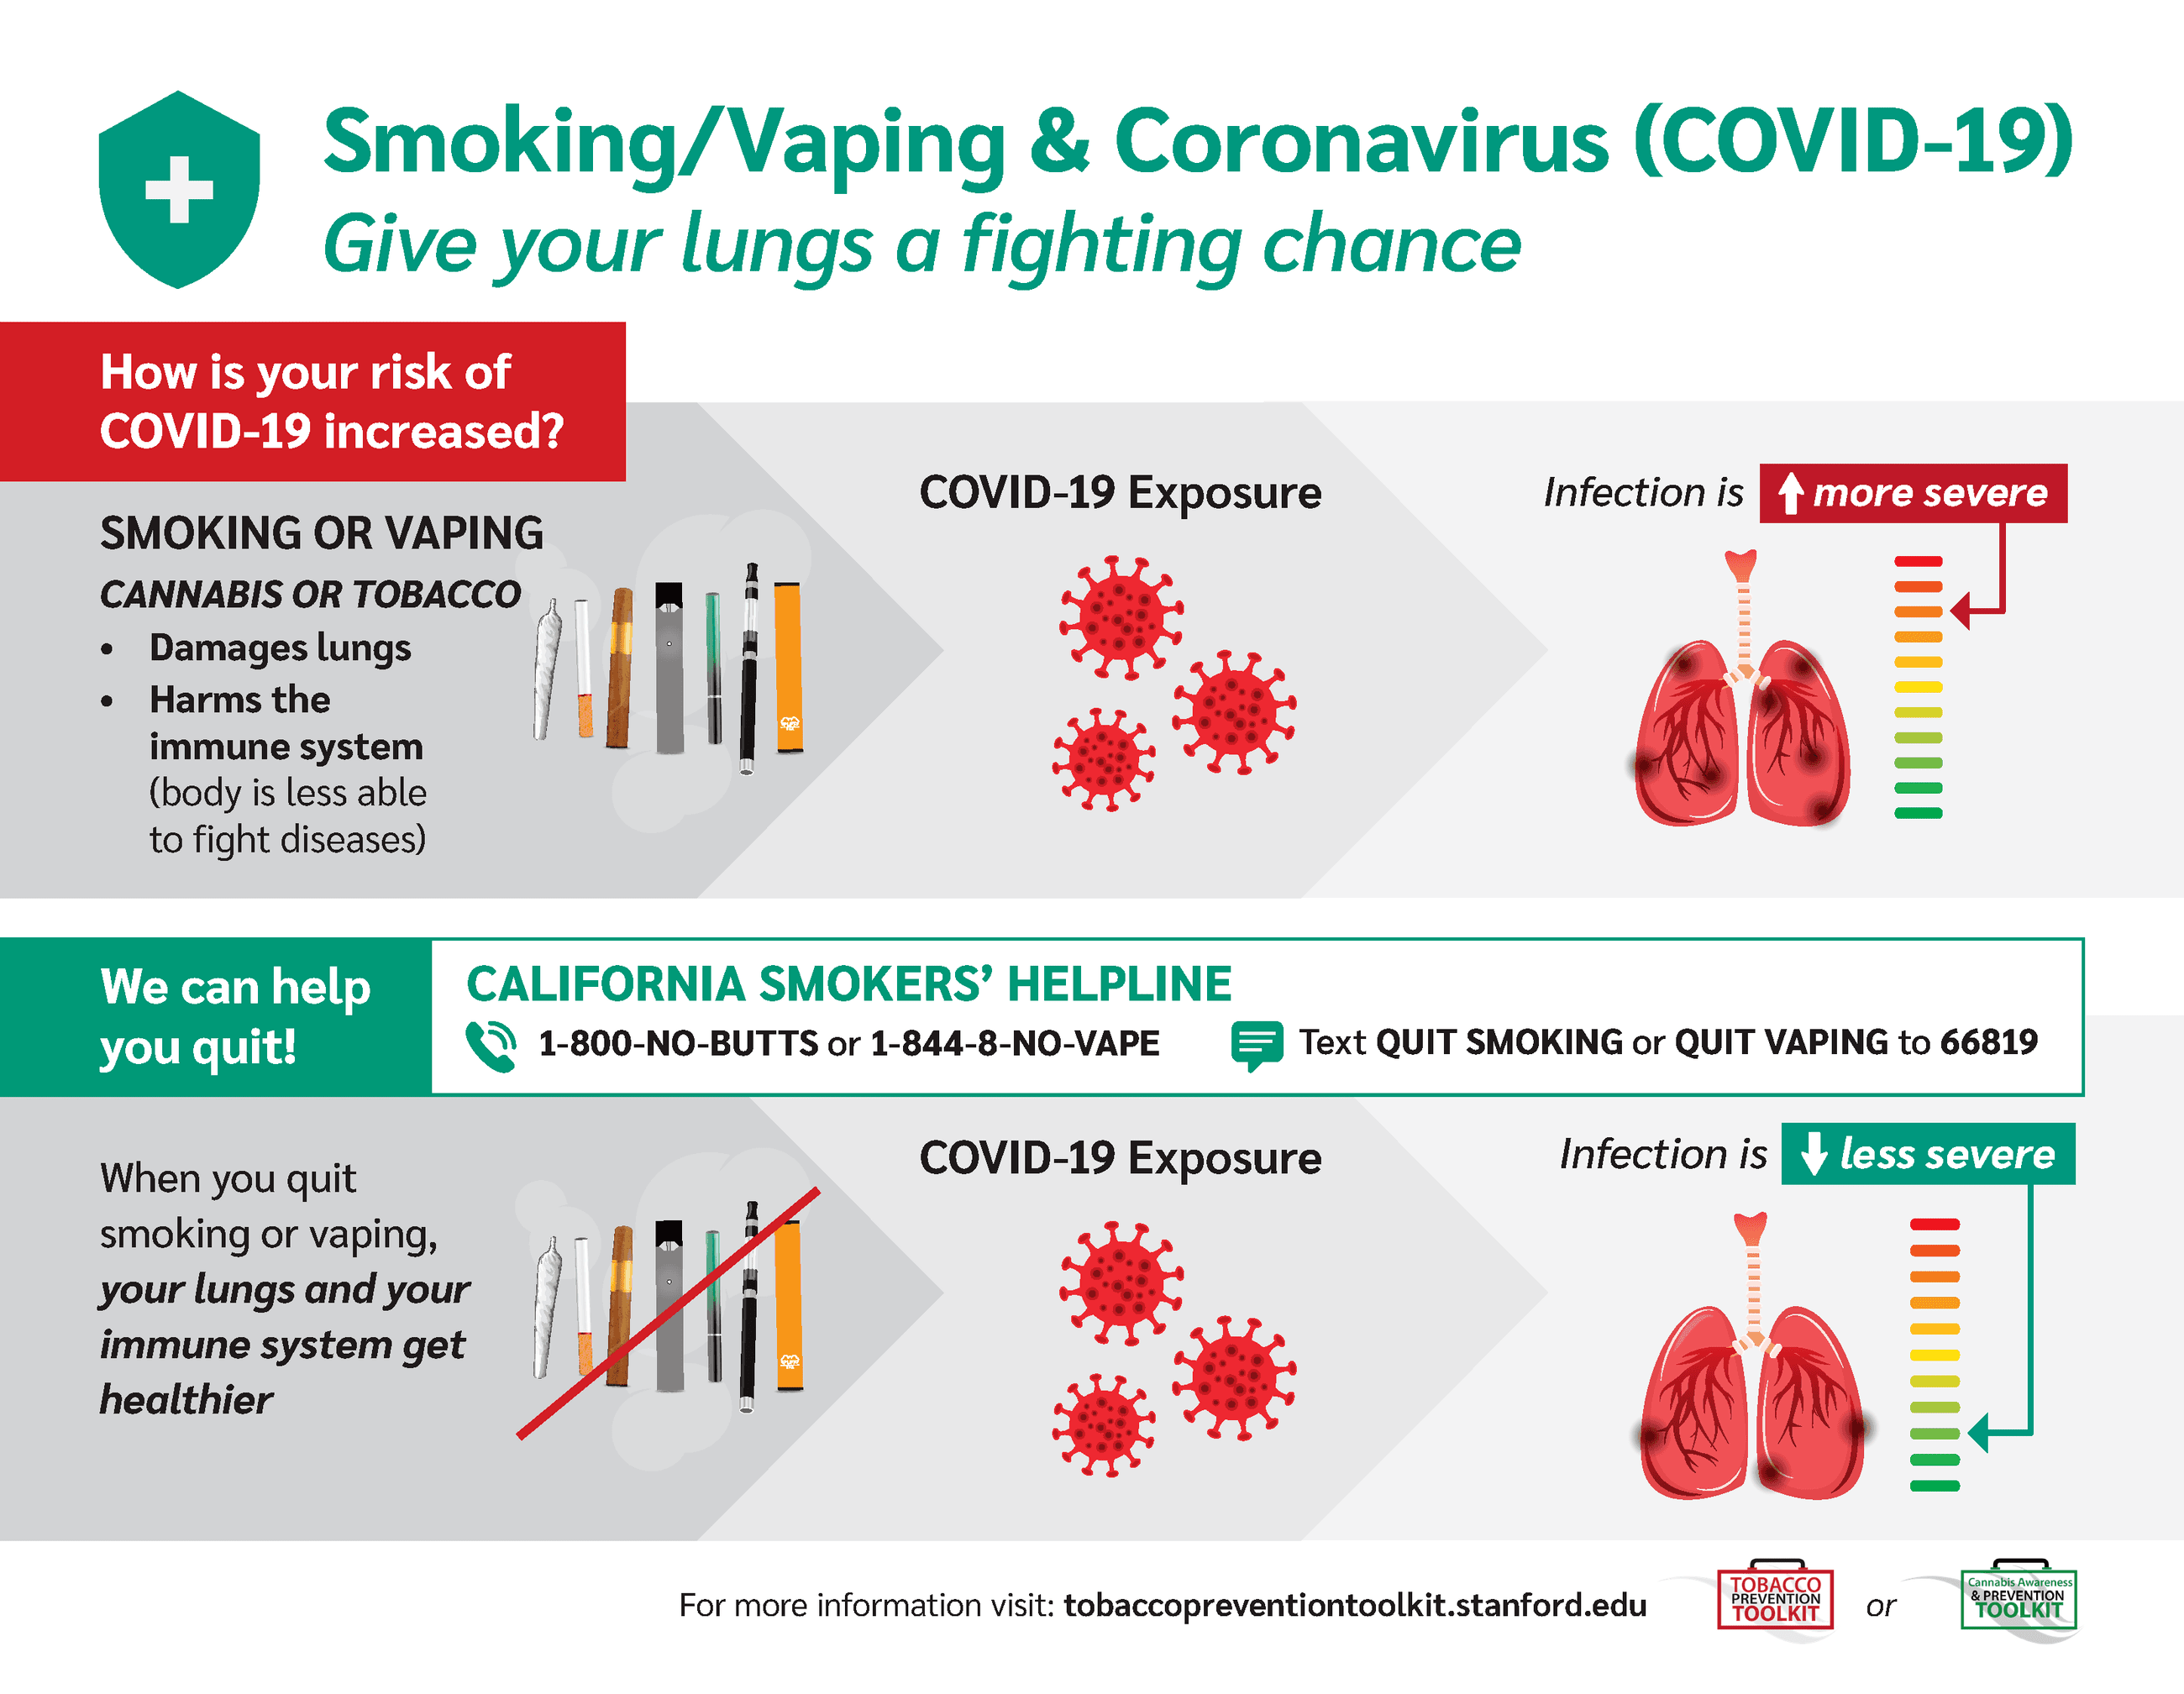 Smoking/Vaping & Coronavirus (COVID-19) Give Your Lungs a Fighting Chance